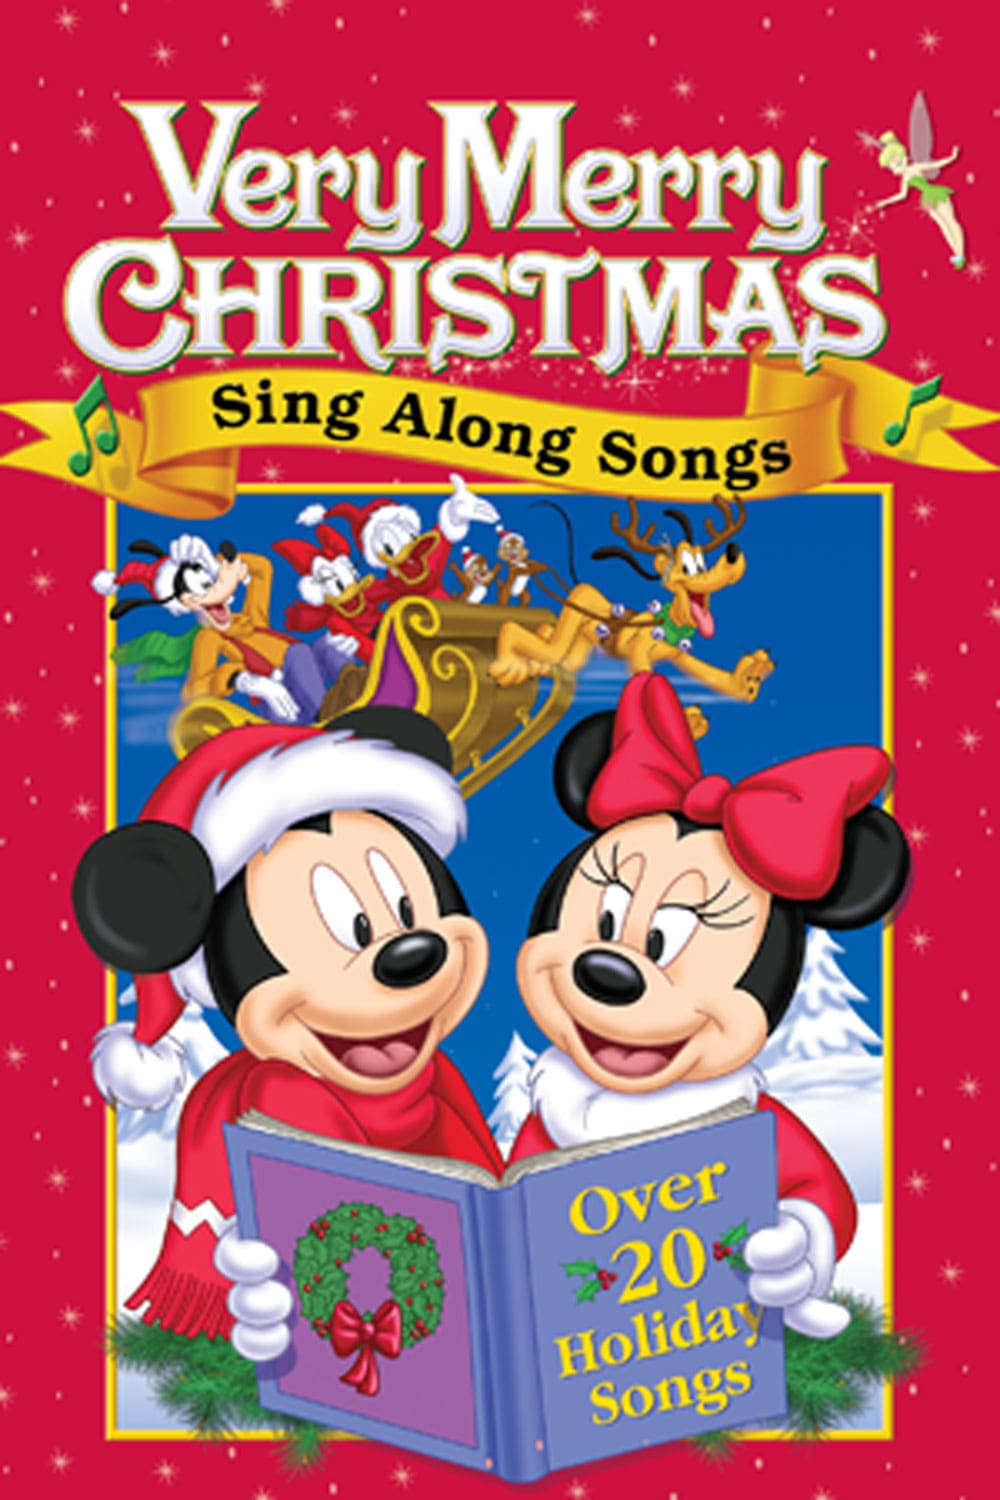 Very Merry Christmas Sing Along Songs | Over 20 Holiday Songs | movie poster